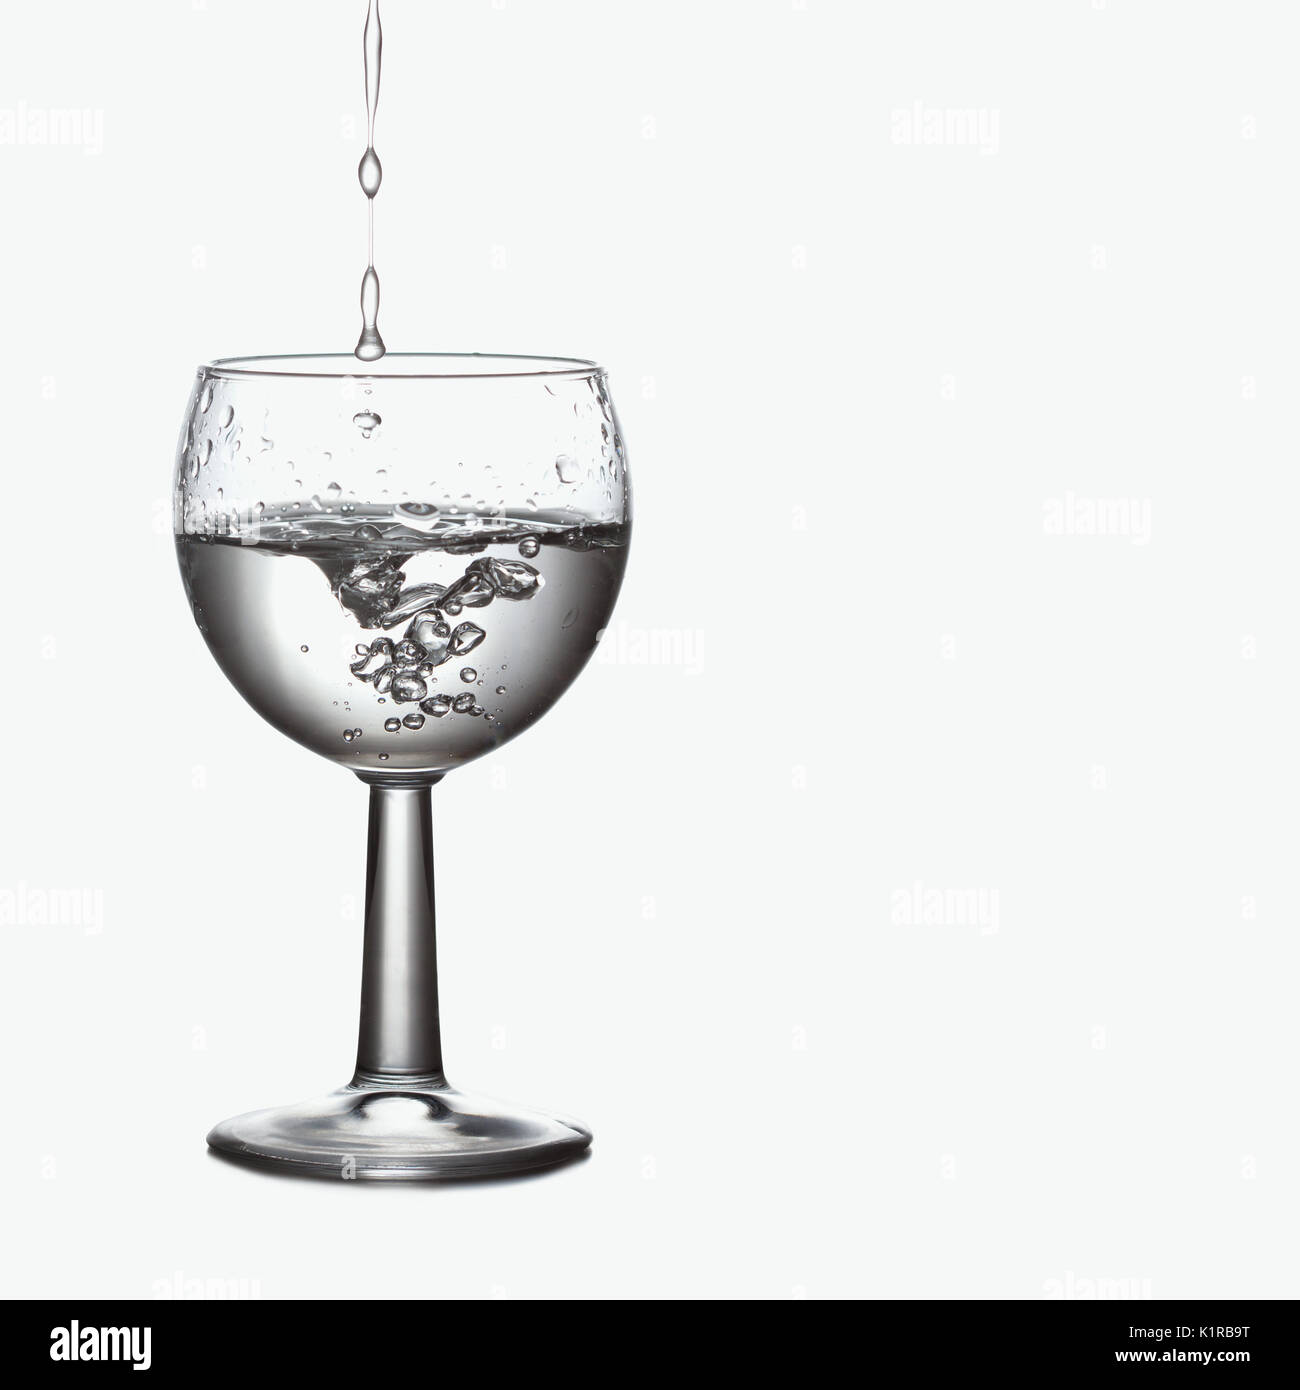 Pour, splash in natural clear water glass. relax spa ecologiac concept. Frozen motion. soft focus, macro view, white background - Stock Image